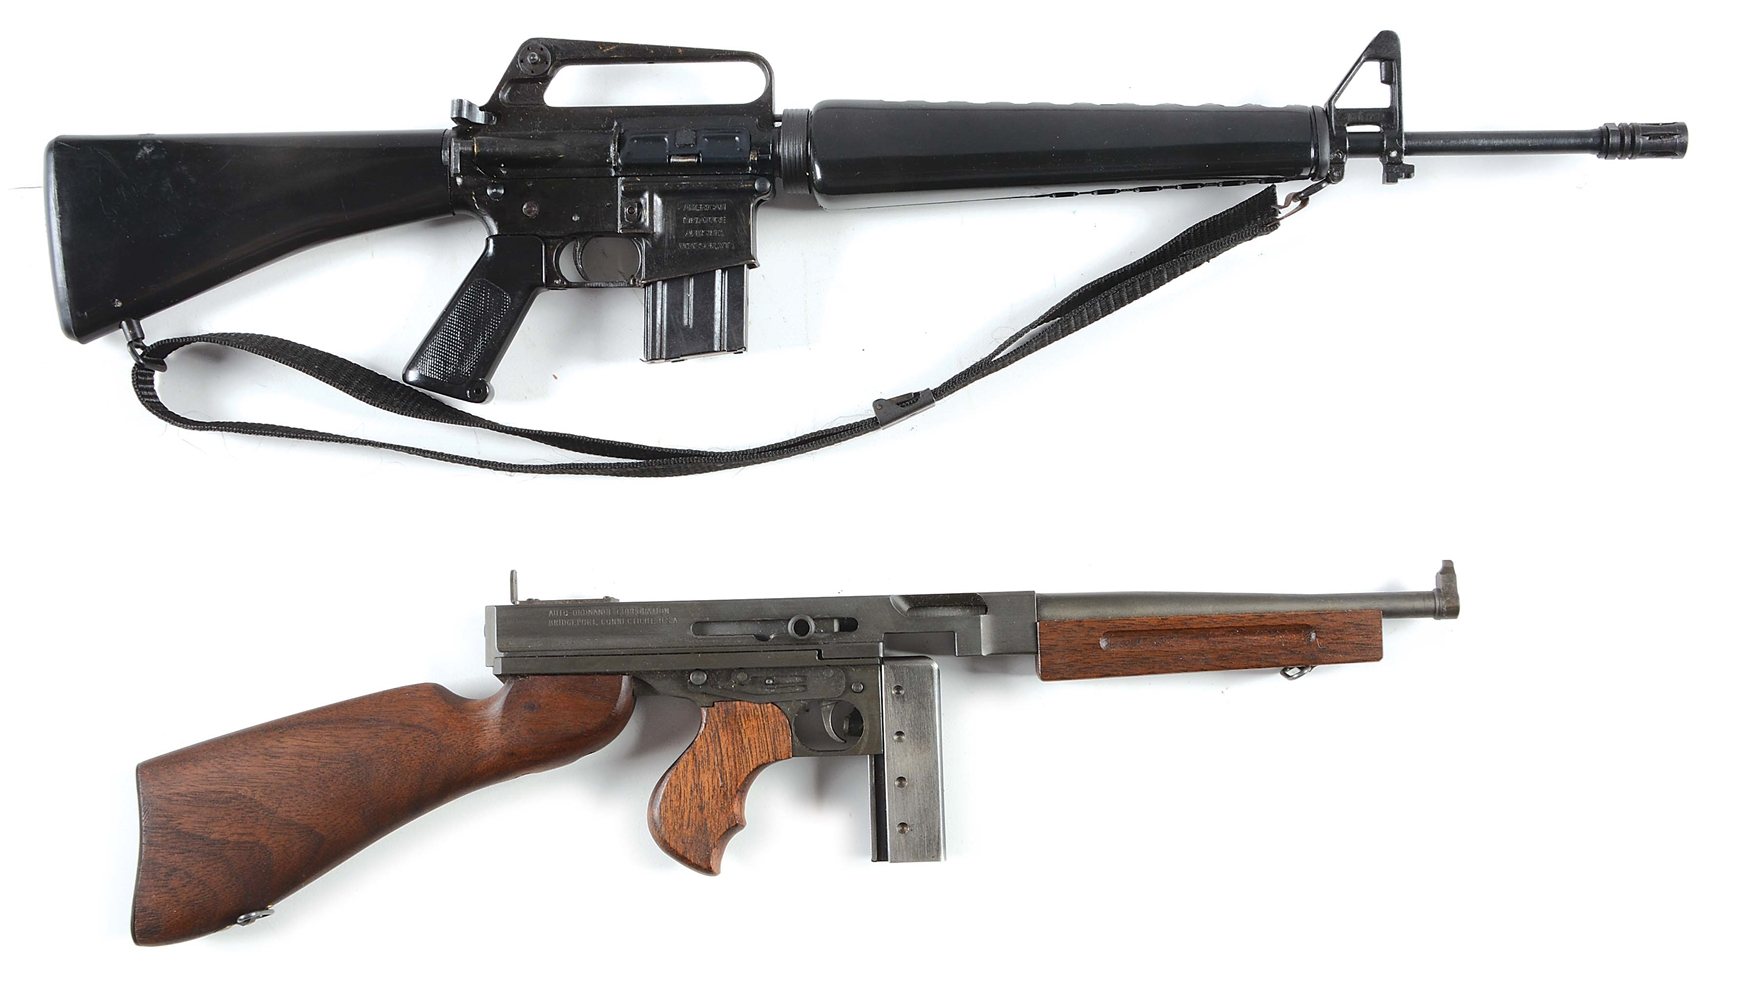 Lot of 2: American Miniature Arms Miniature M16 and Cased Miniature Auto-Ordnance Thompson Submachine Gun.